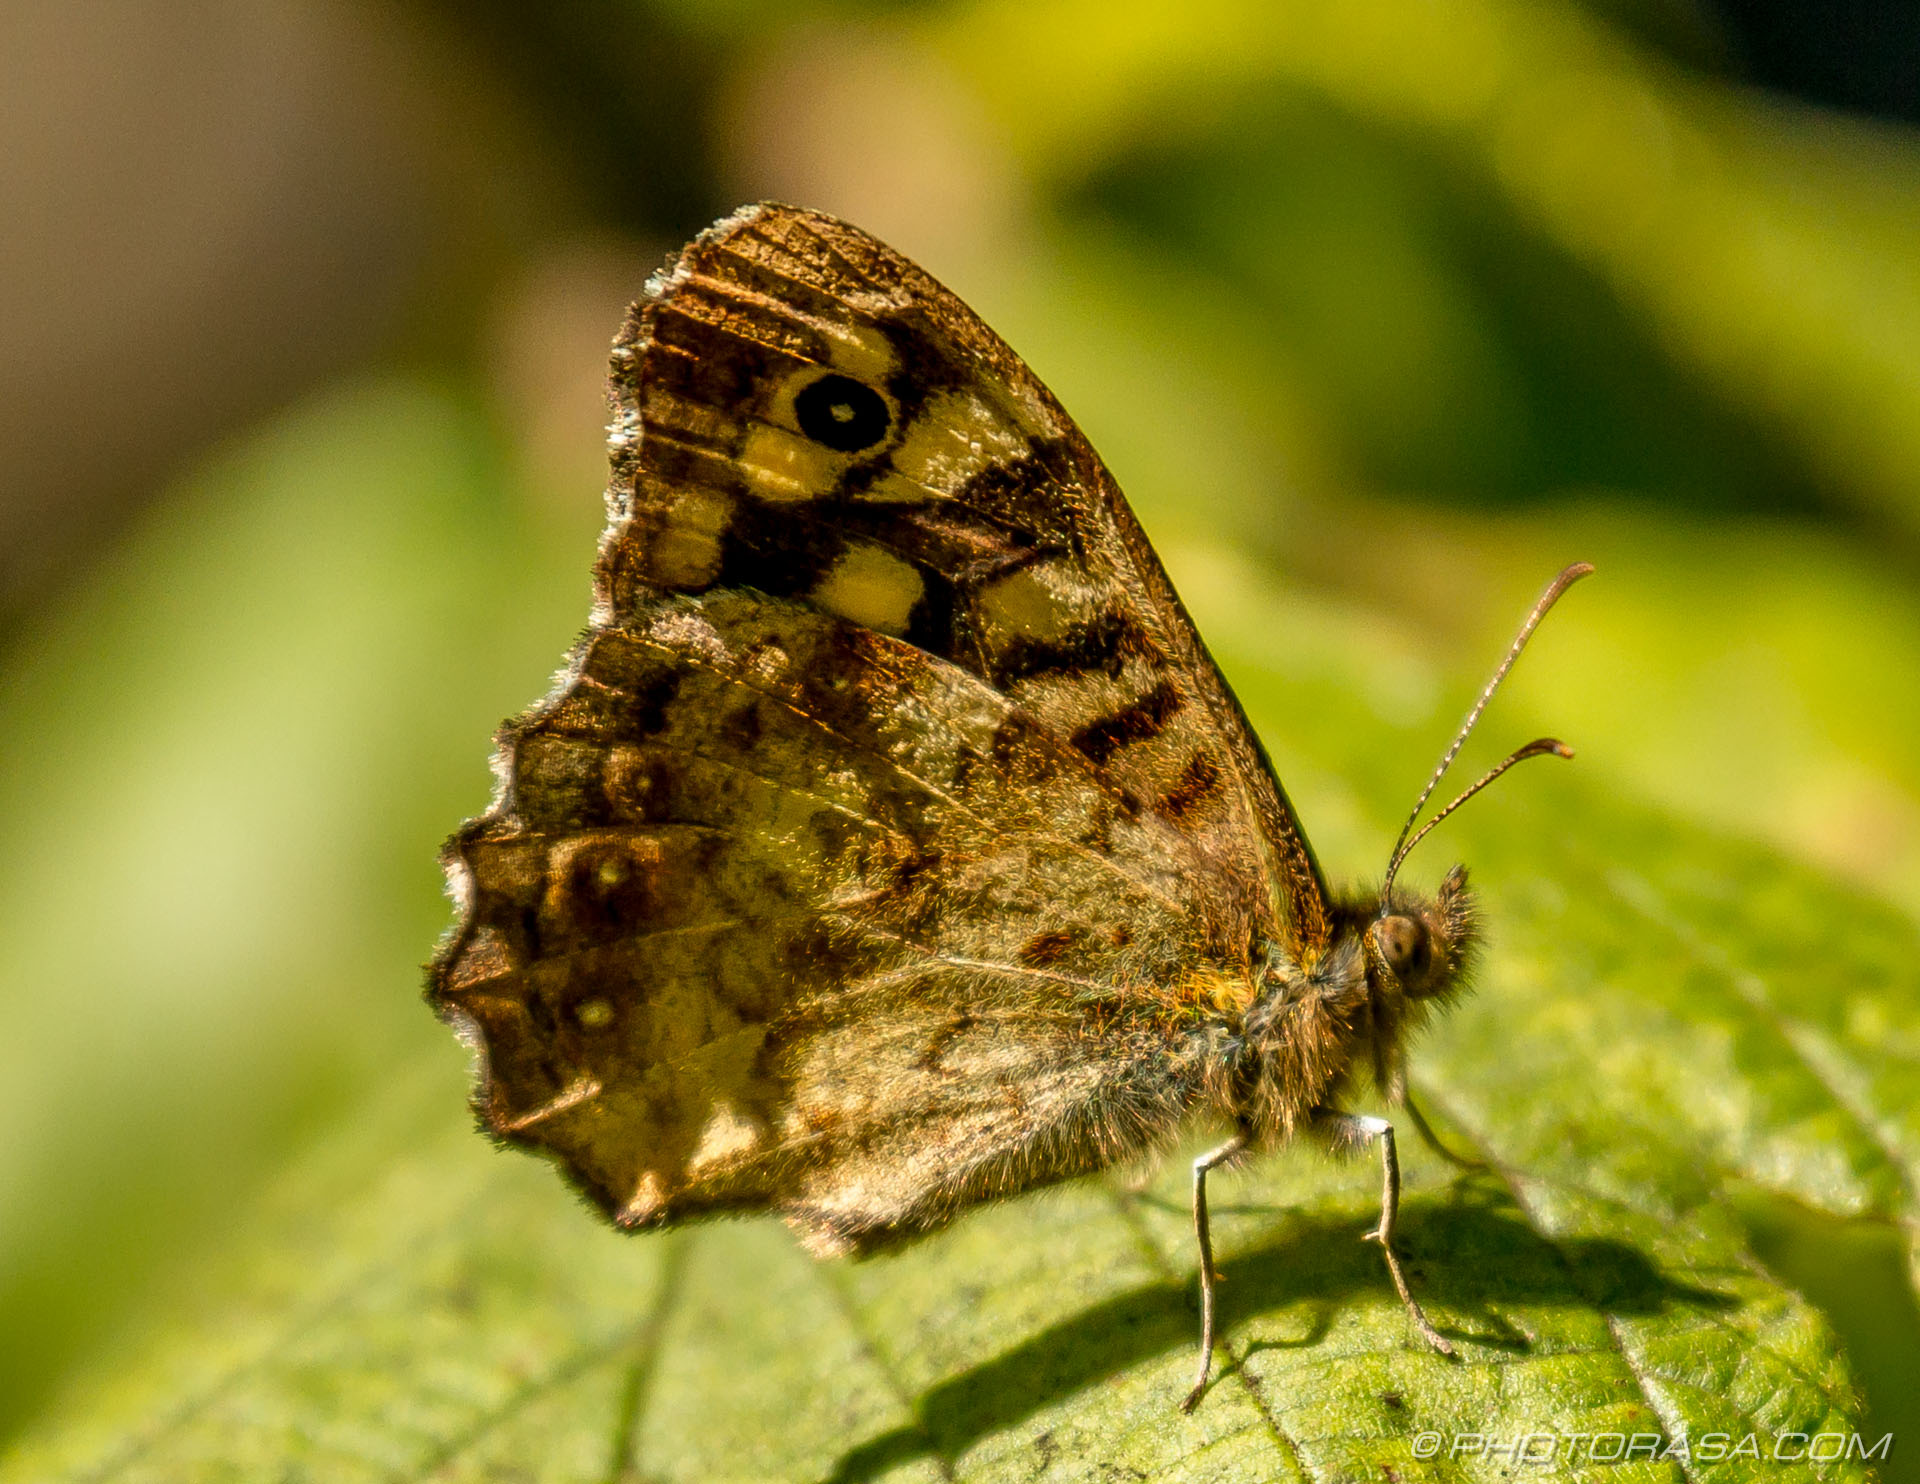 http://photorasa.com/speckled-wood-butterfly/speckled-wood-butterfly-underwing/